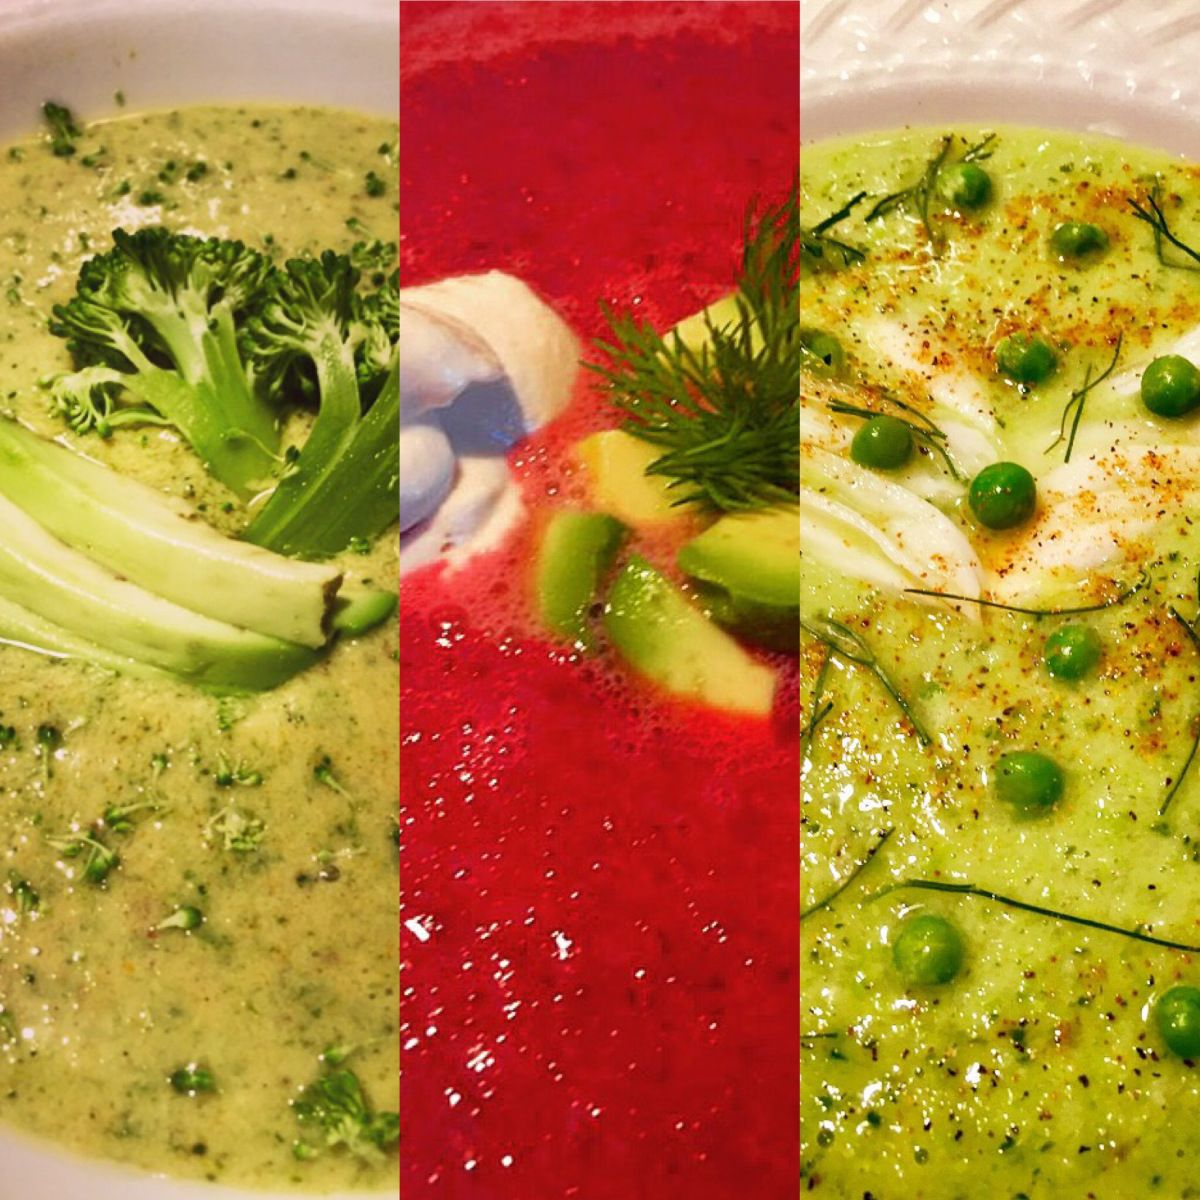 Review and recipes from judita wignalls raw simple detox raw review and recipes from judita wignalls raw simple detox raw vegan recipe book forumfinder Choice Image